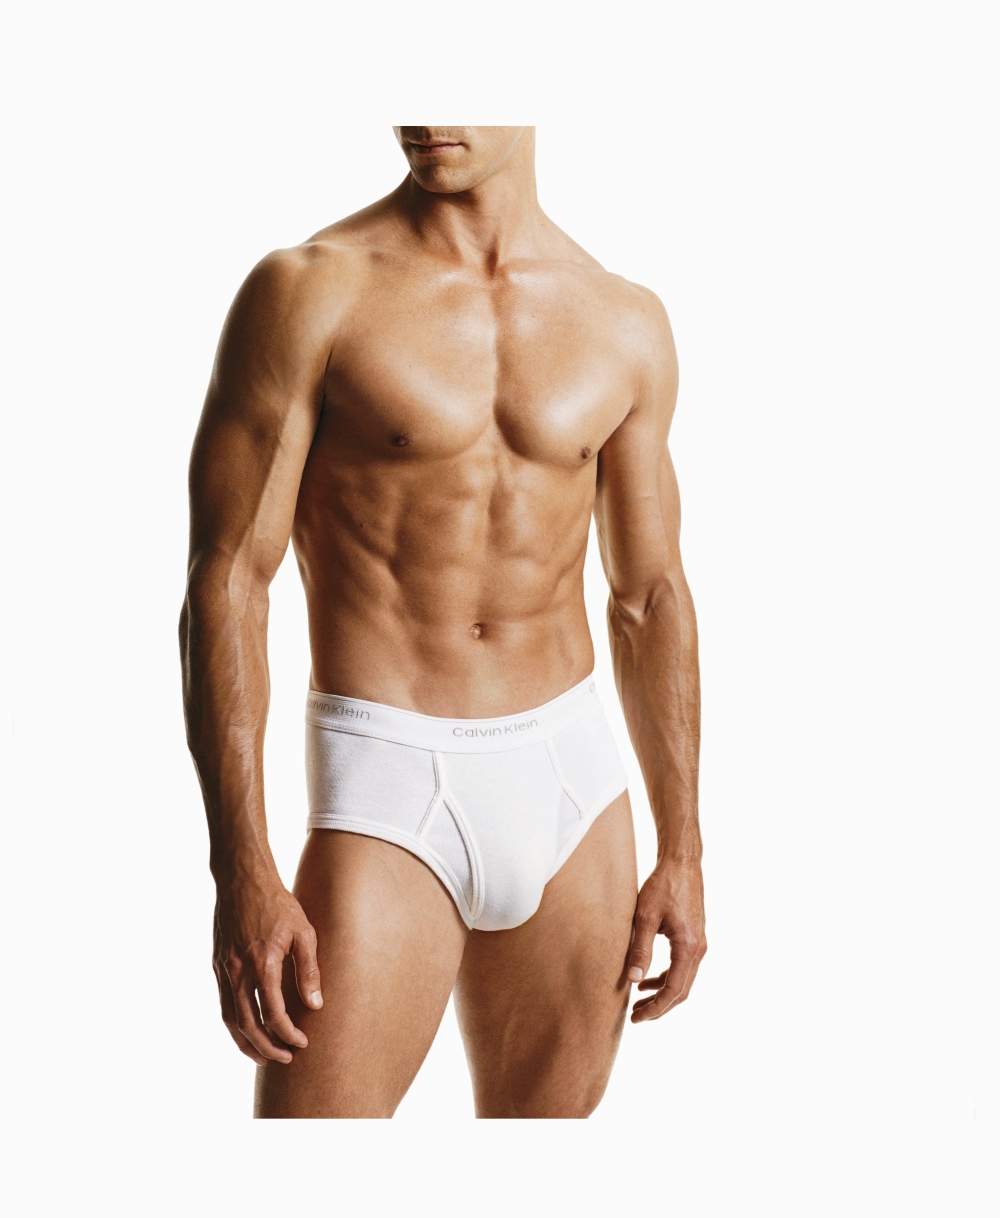 These Calvin Klein Basics Briefs are in an allround great value three pack